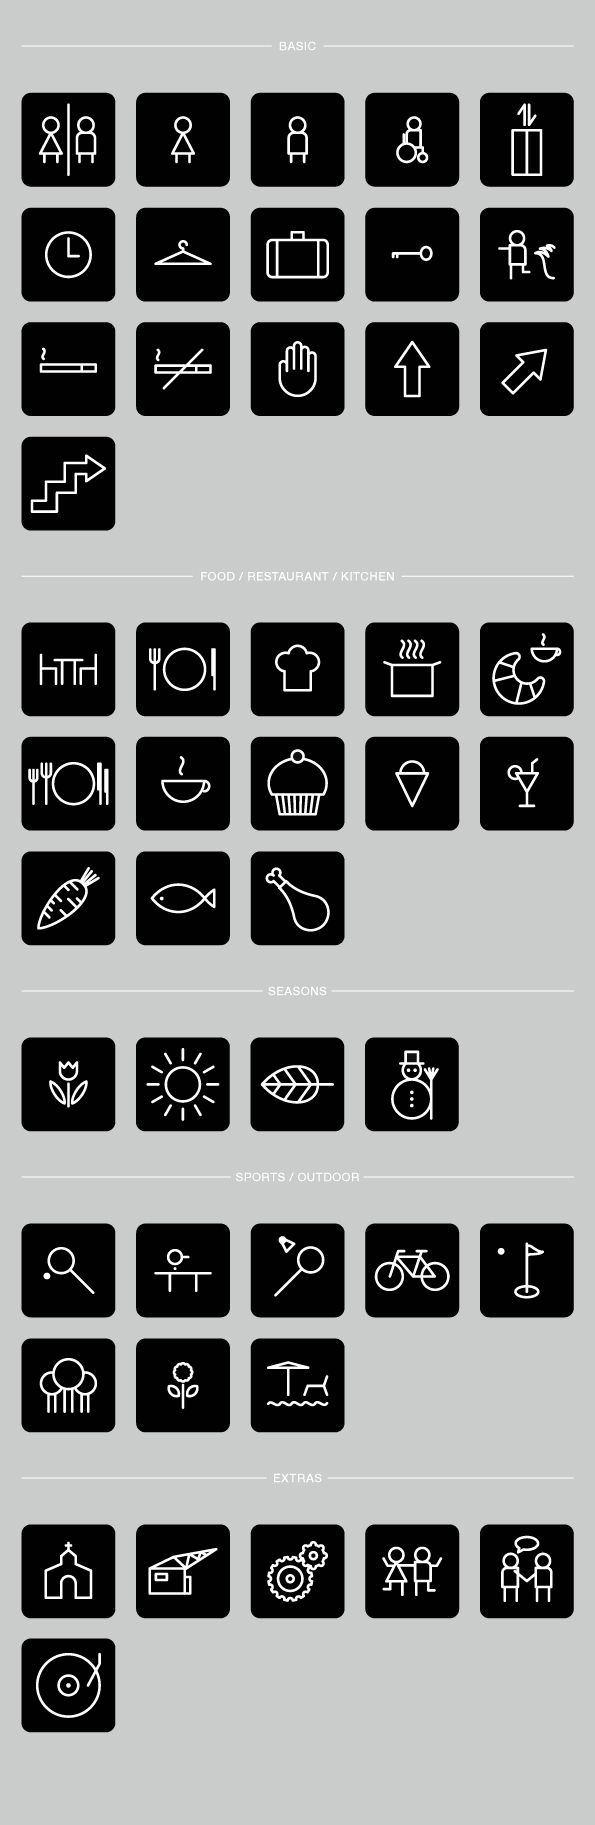 Hotel Pictograms - Full Version on the Behance Network